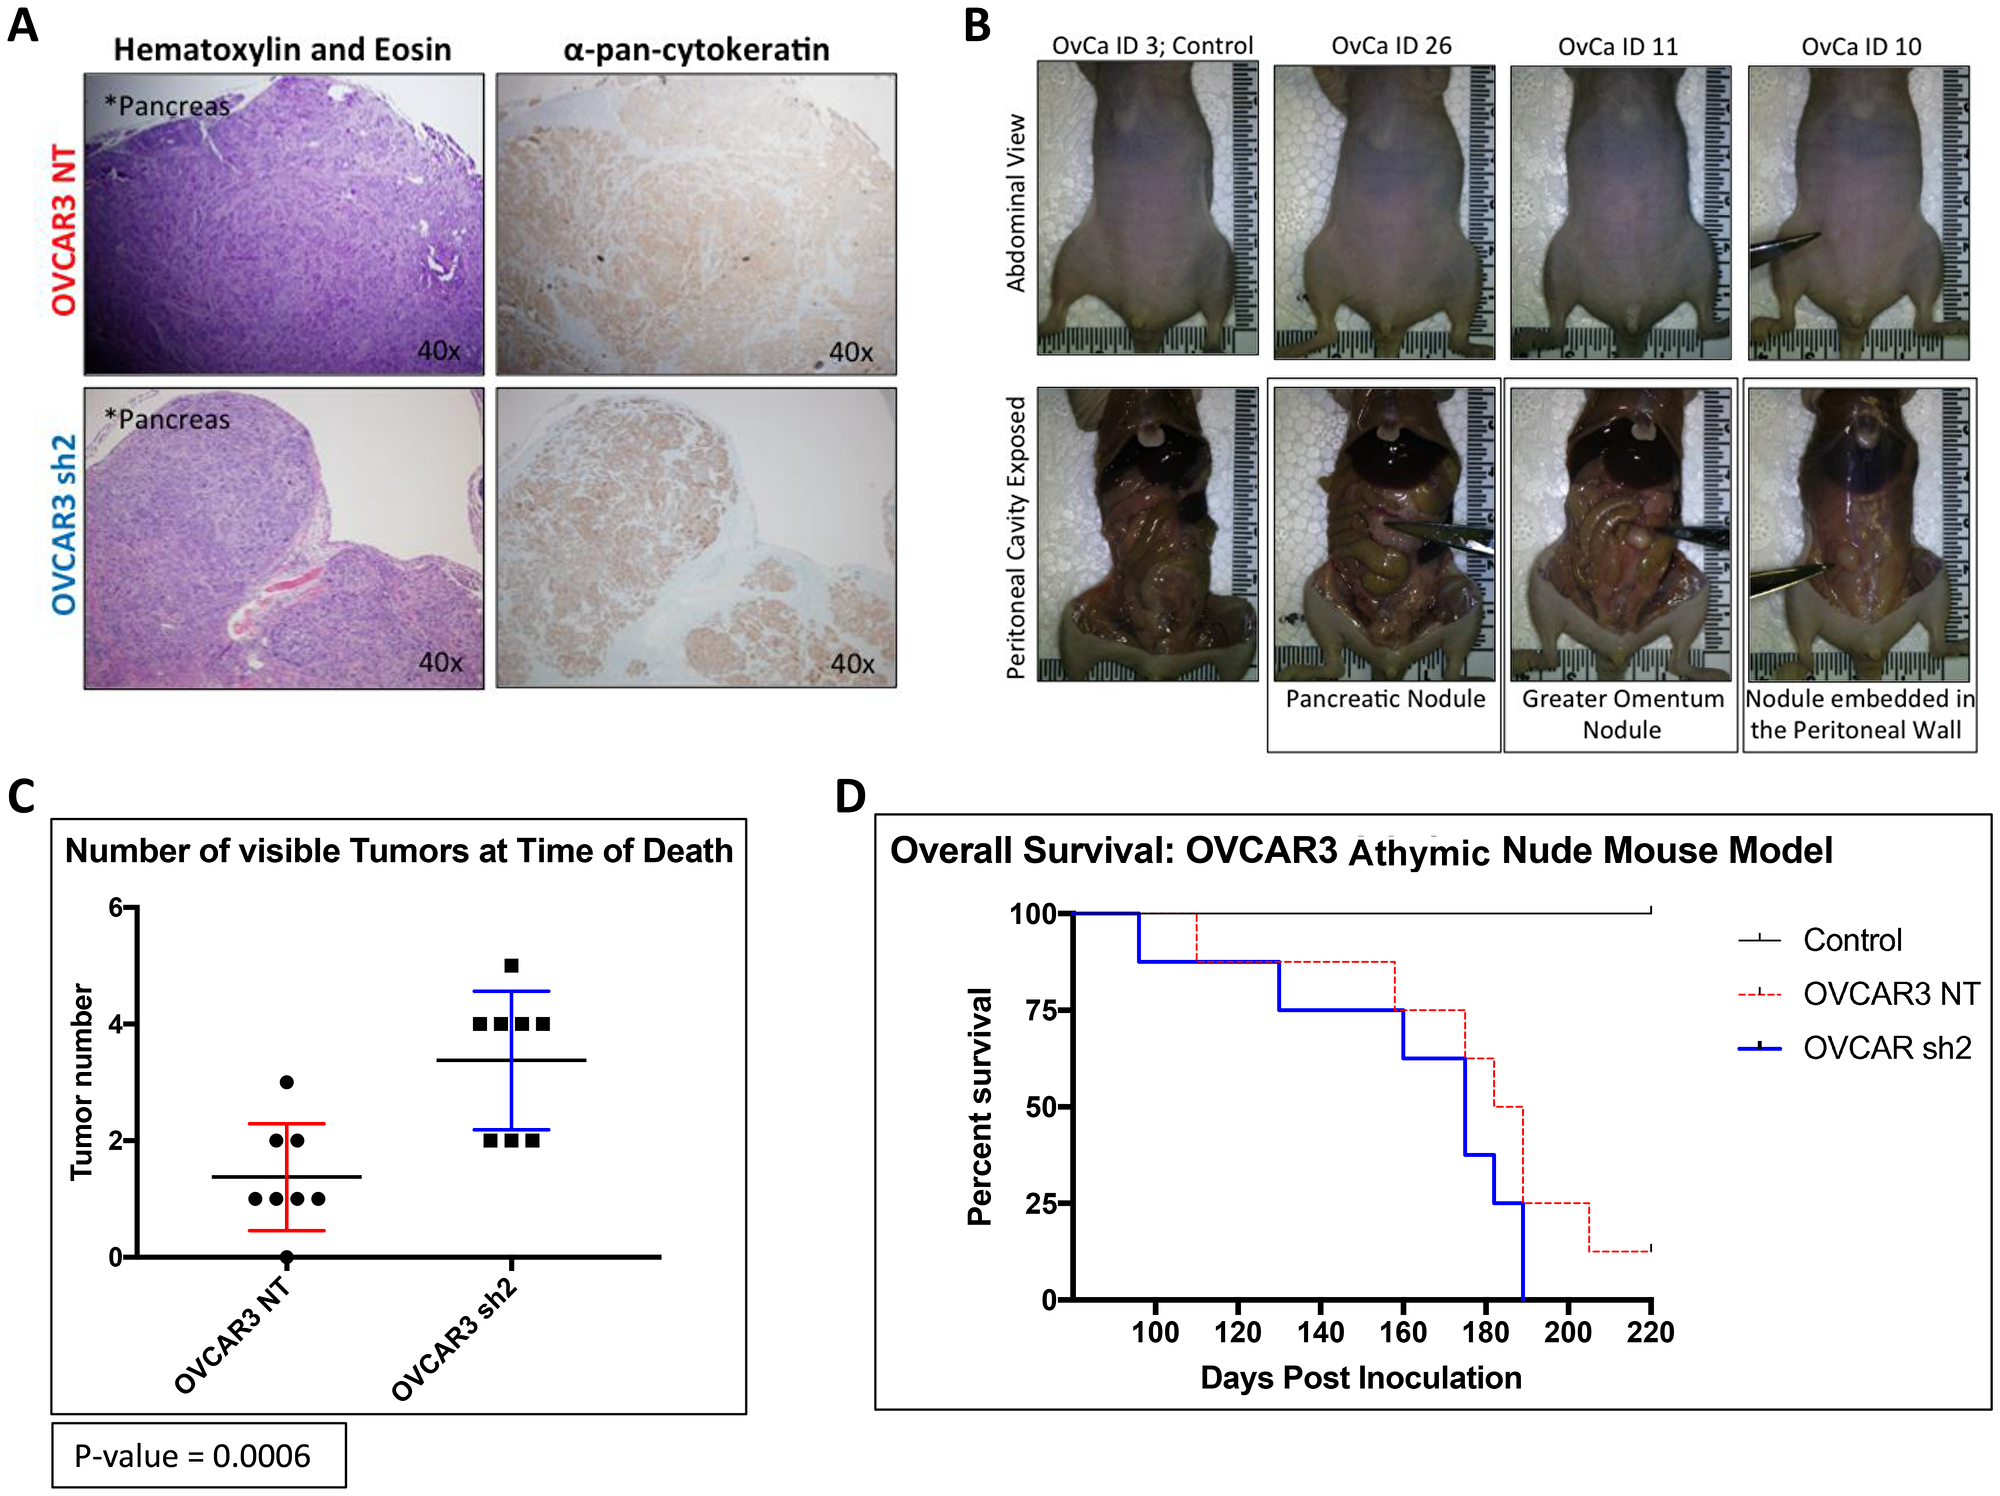 OVCAR3-NT mice lived significantly longer than OVCAR3 SUSD2-KD mice.